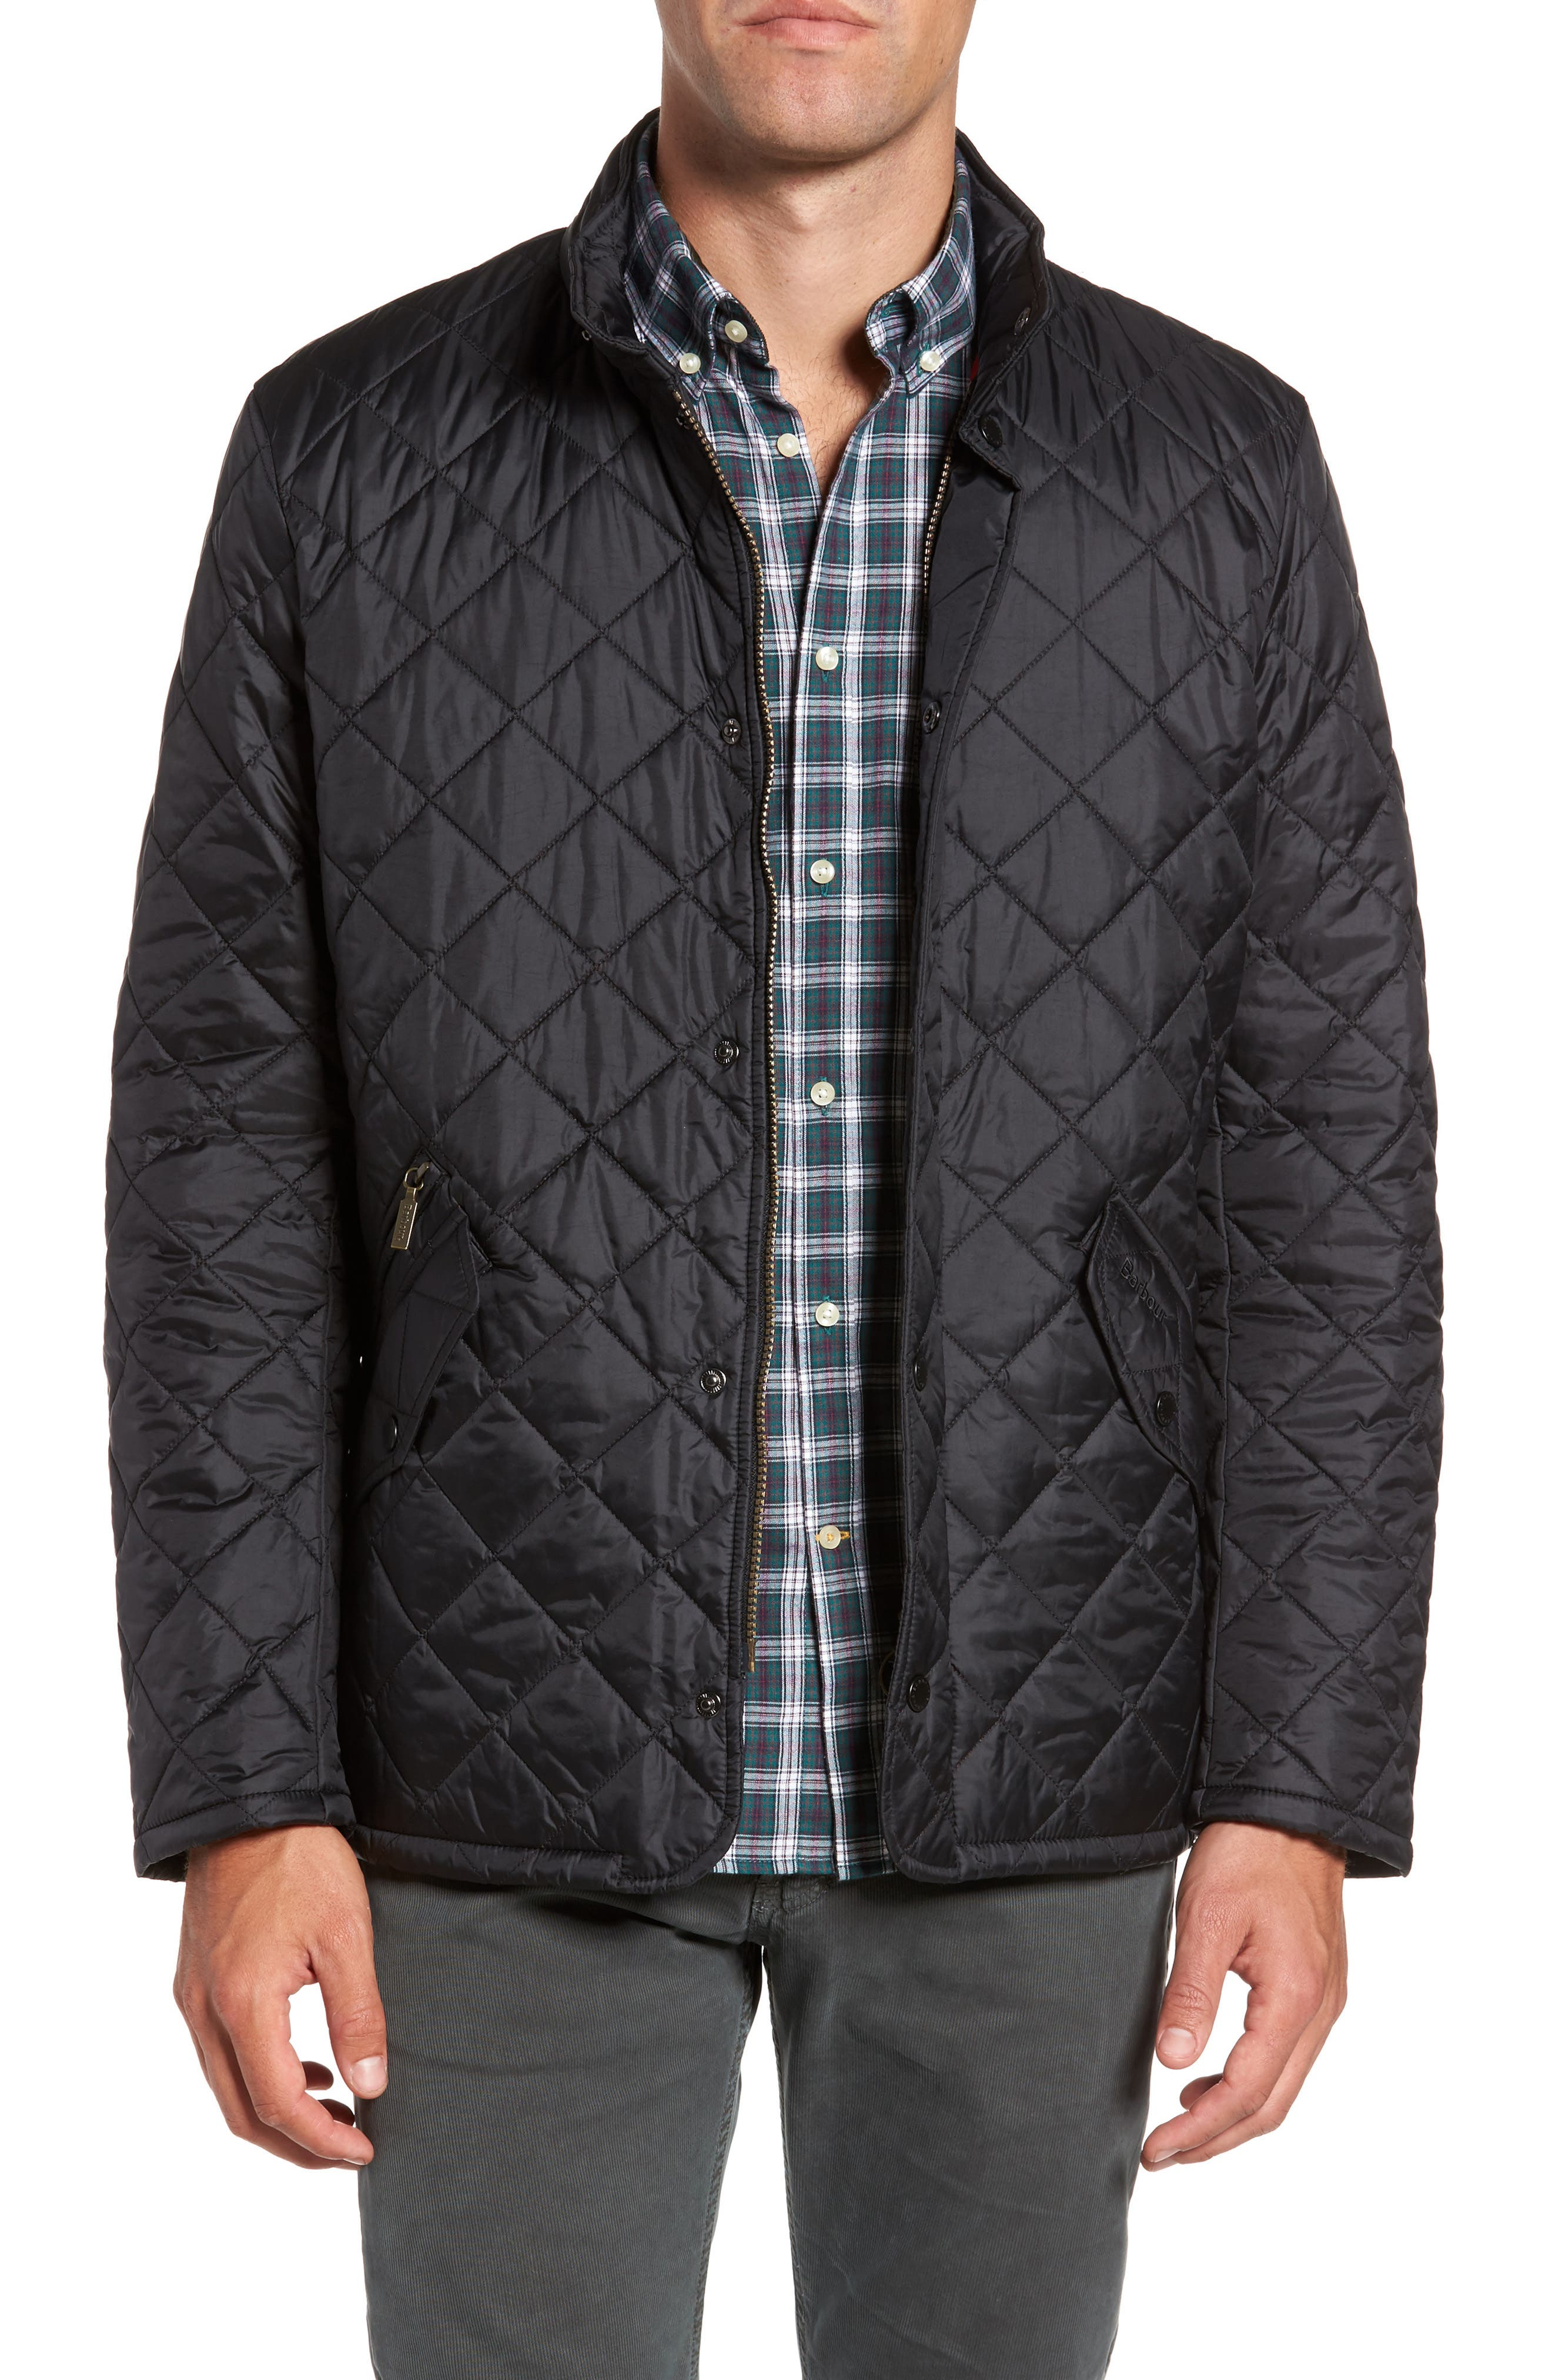 BARBOUR, Flyweight Chelsea Quilted Jacket, Main thumbnail 1, color, BLACK